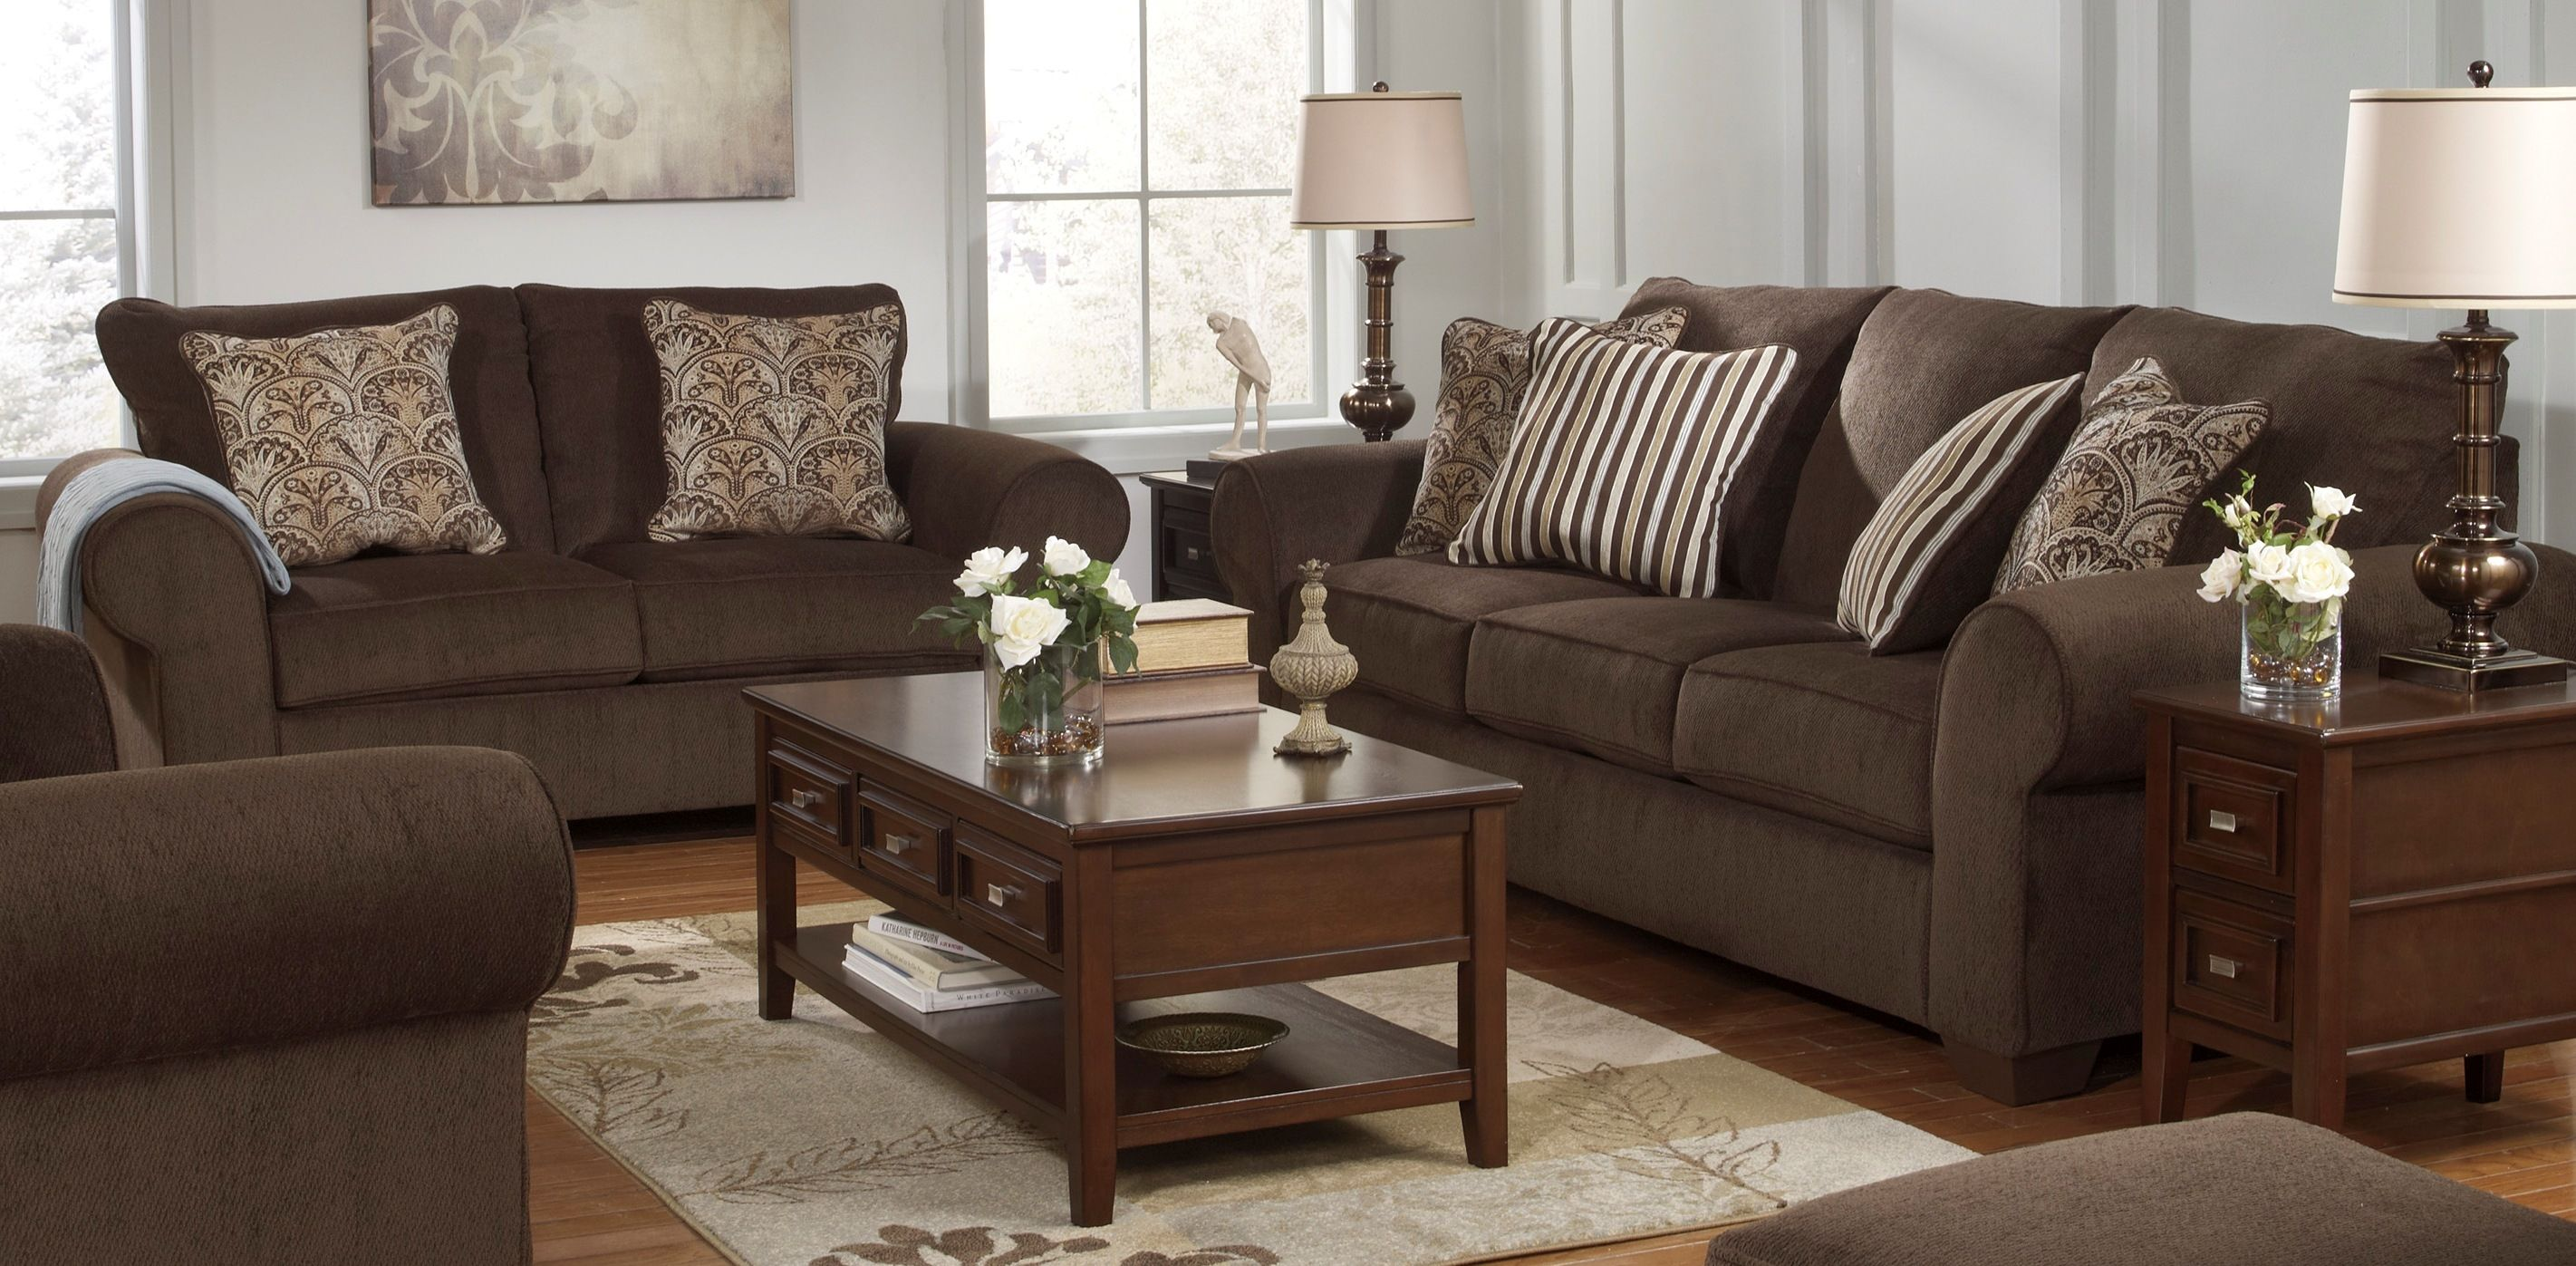 Accent Chair Living Room Furniture Set Trend Home Design